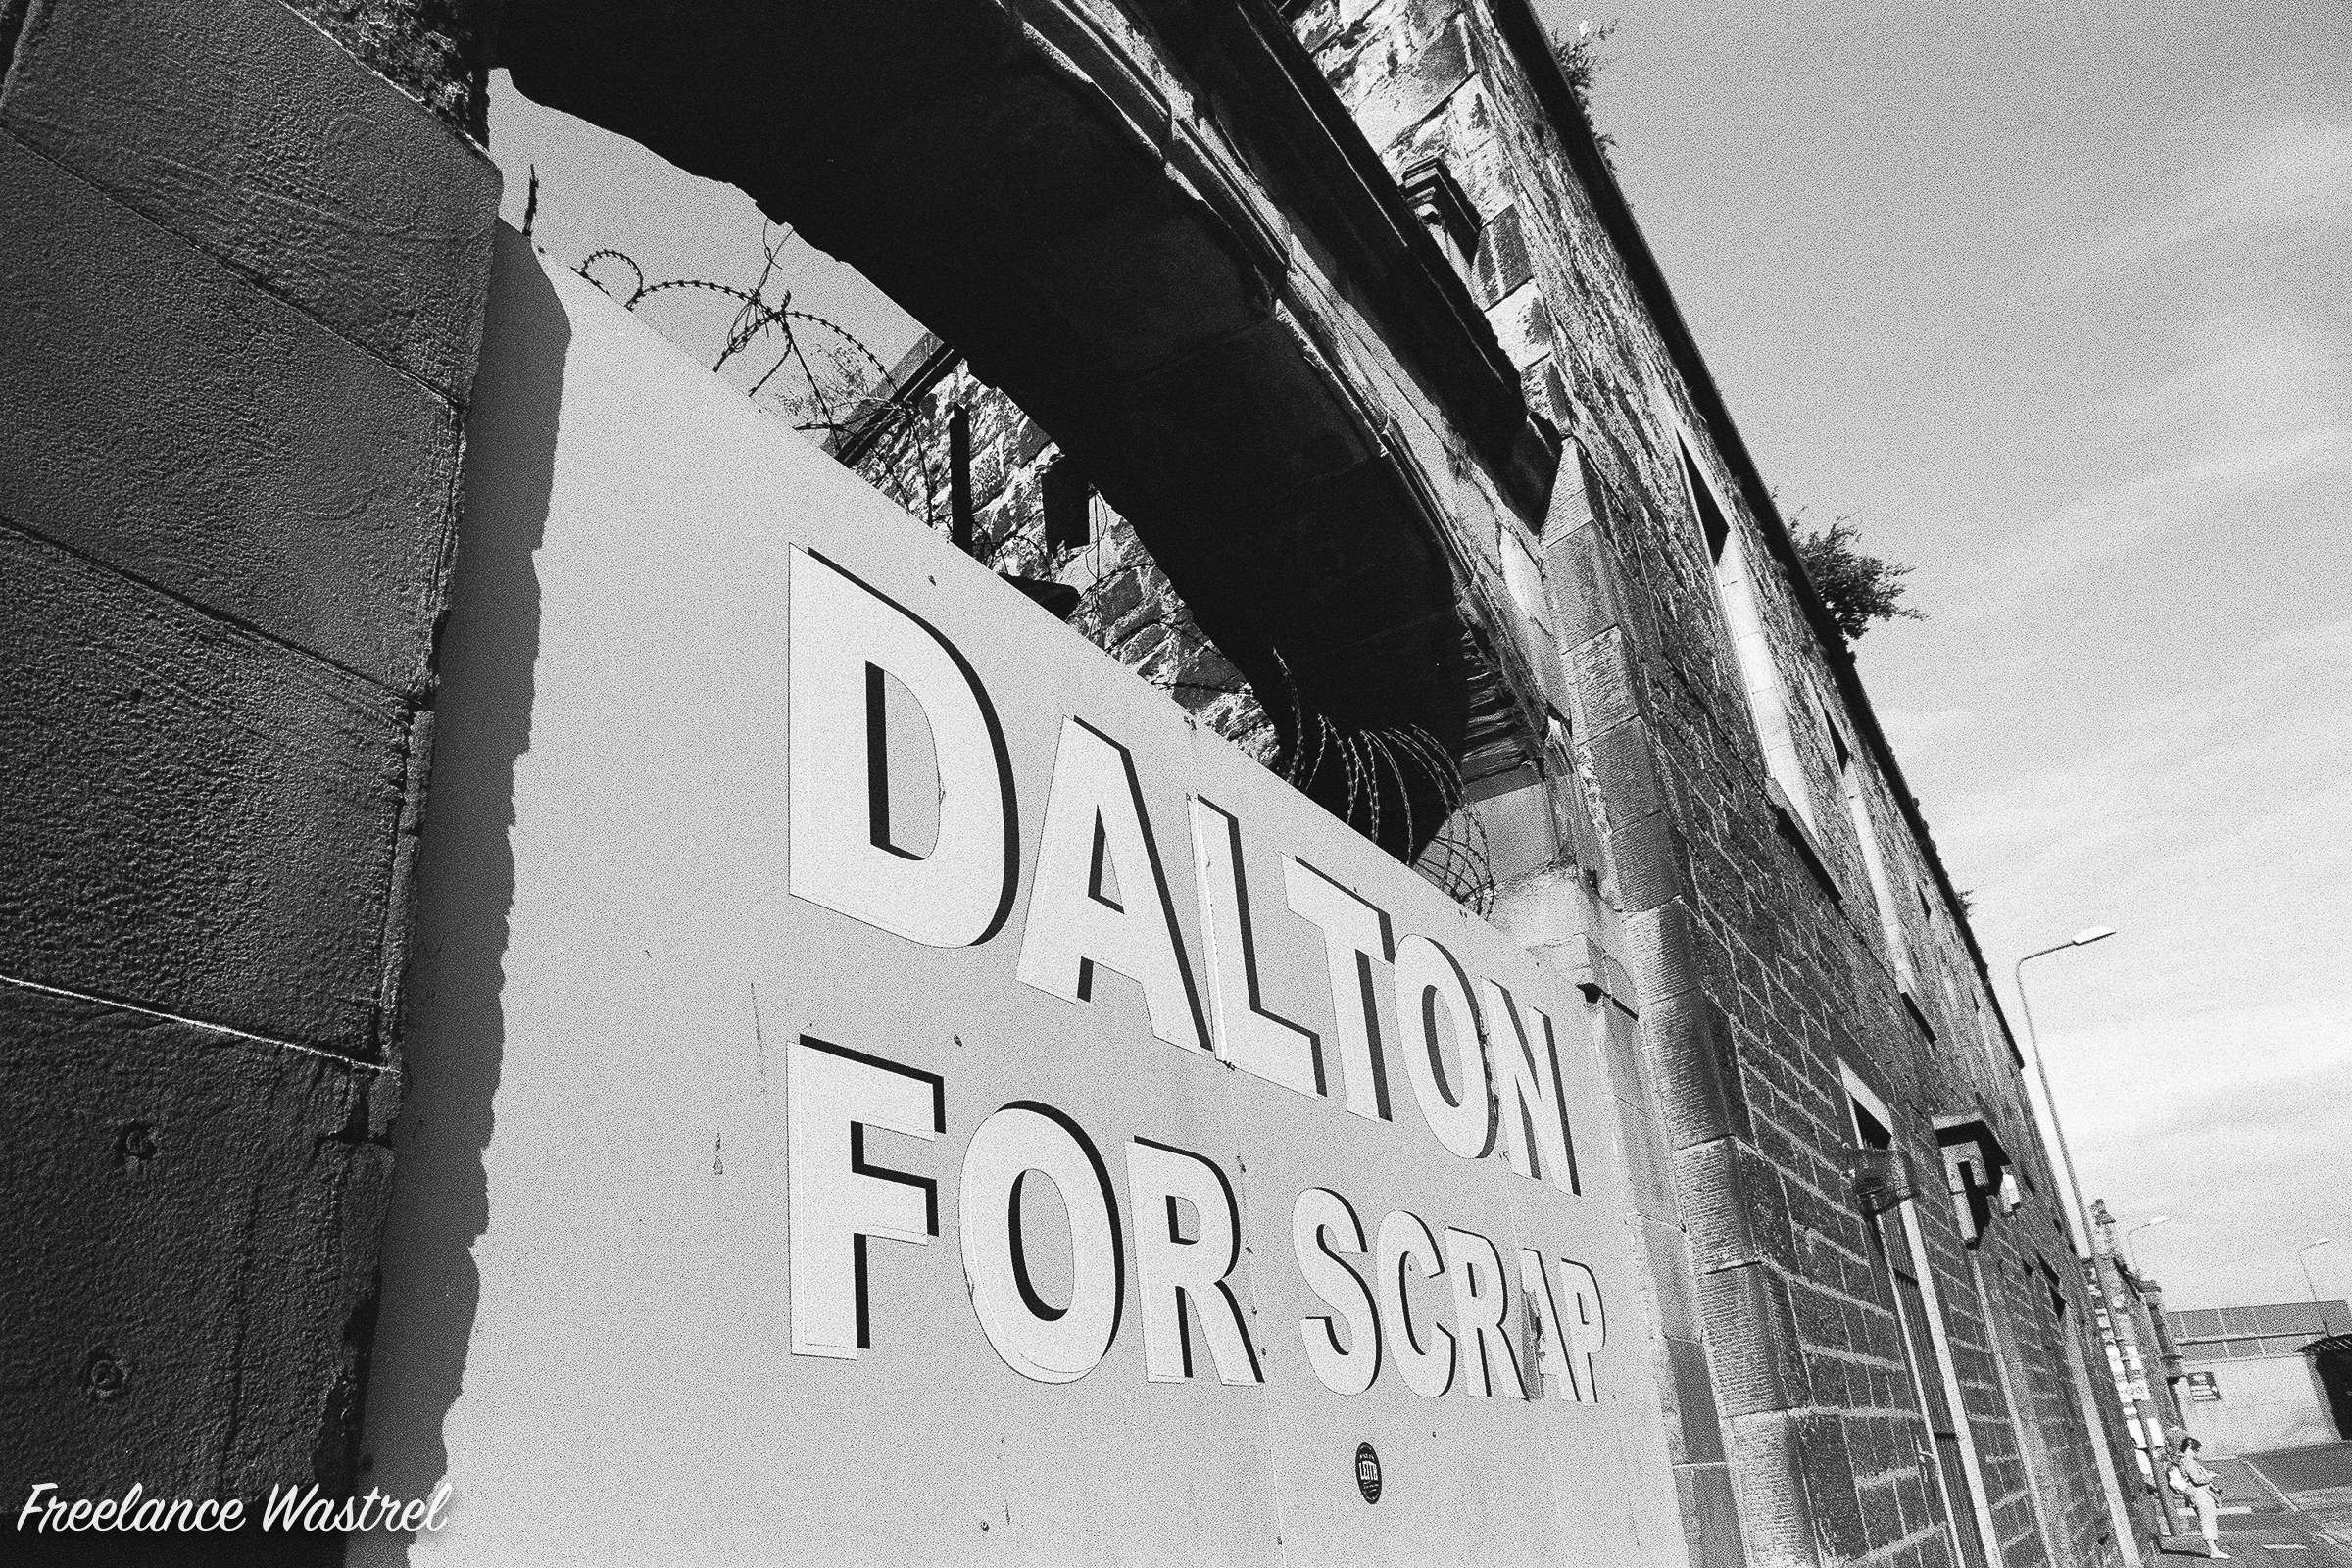 Dalton For Scrap, Leith